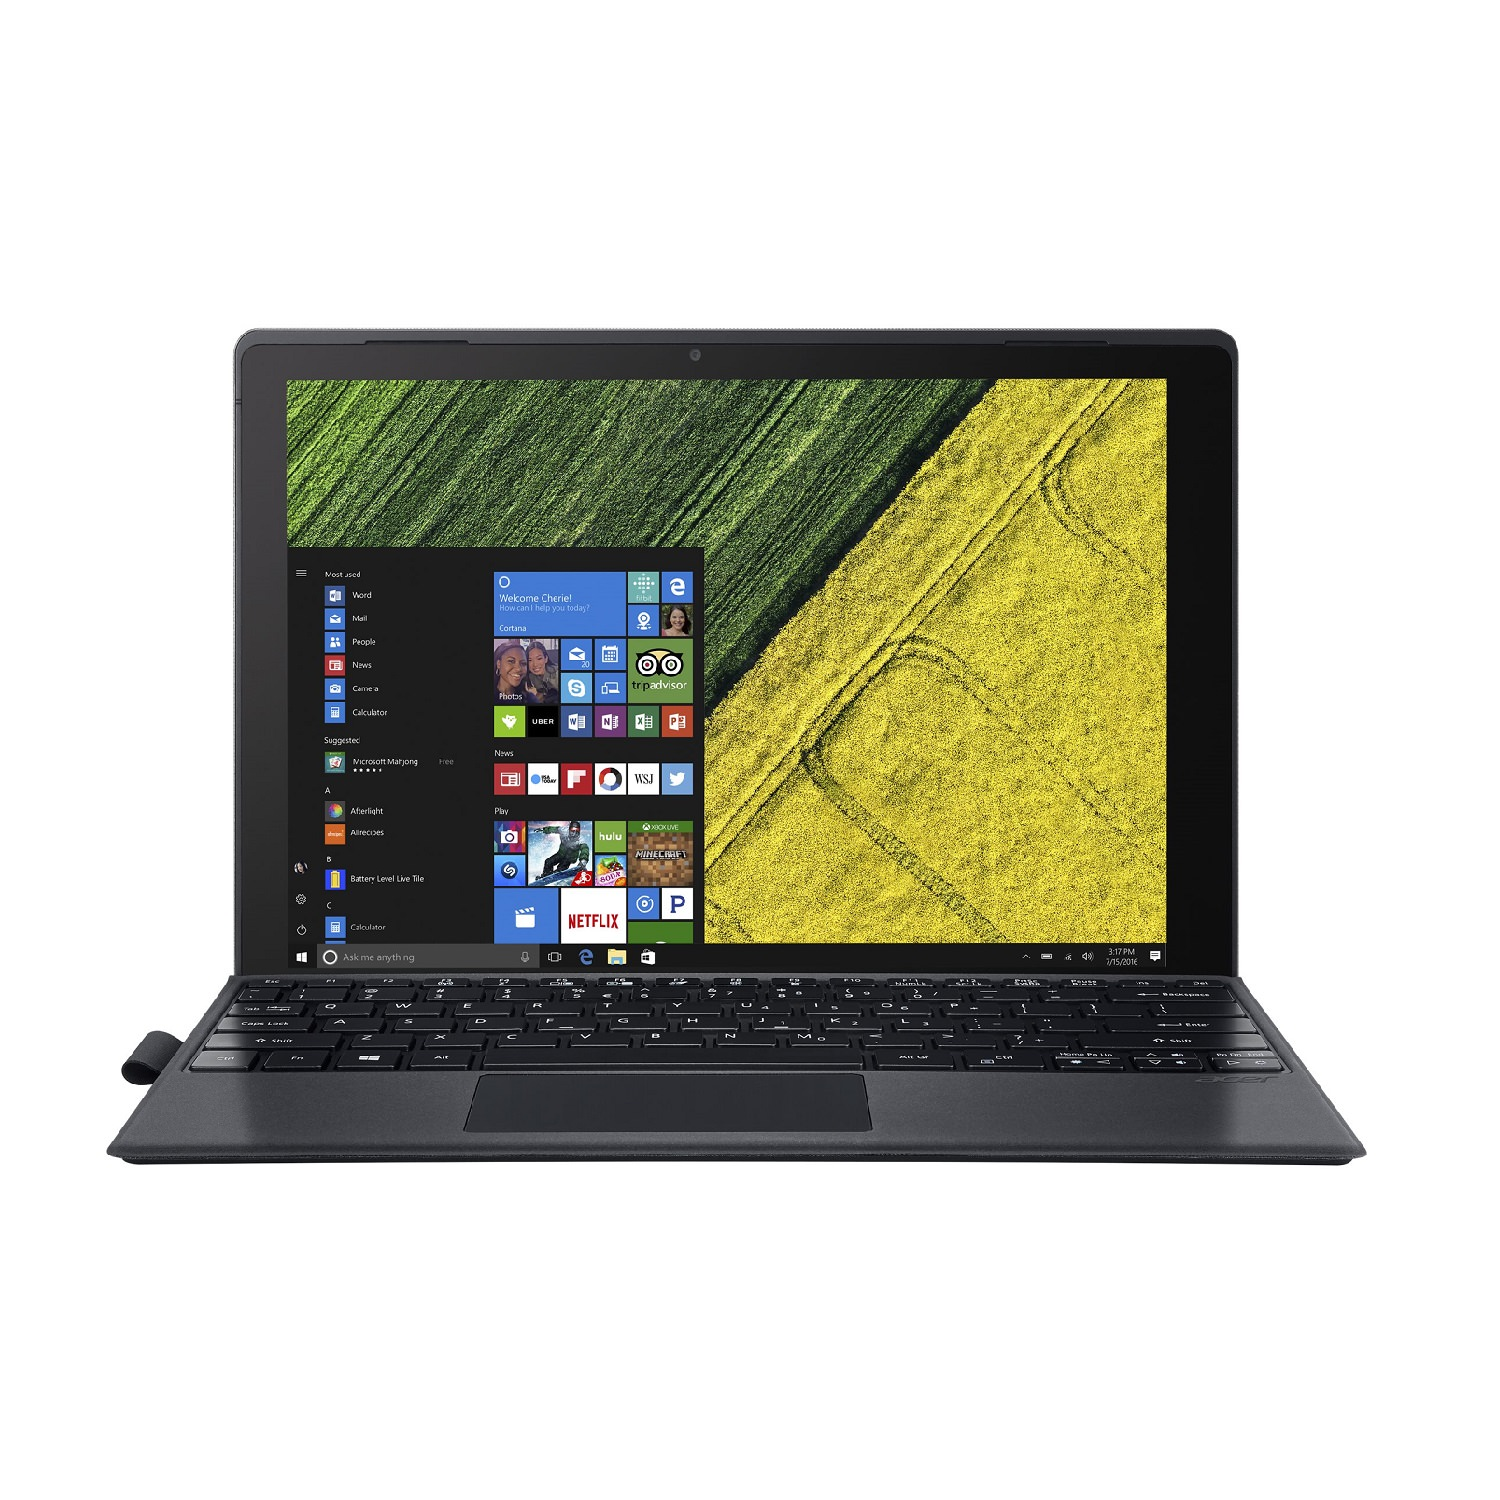 Acer Switch 5 2-in-1 Notebook with Intel i7-7500U, 8GB 256GB SSD